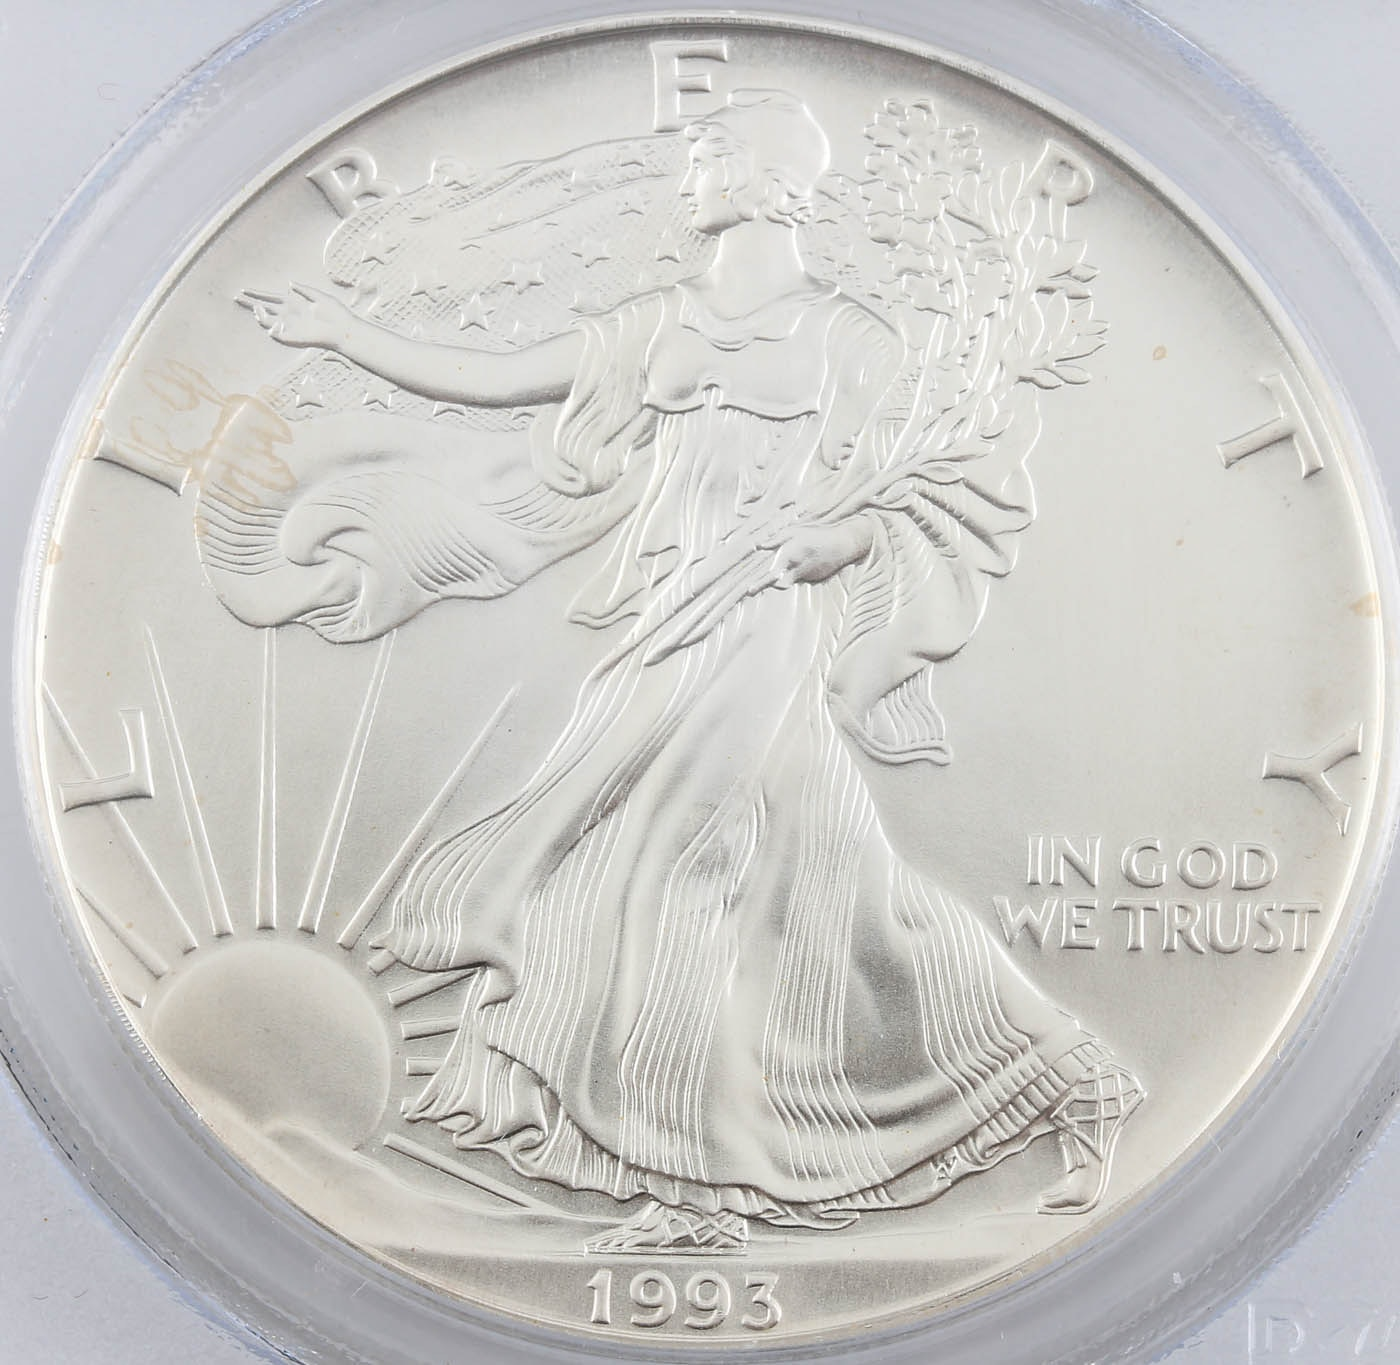 Encapsulated 1993 One Dollar U.S. Silver Eagle in Gem Uncirculated Condition